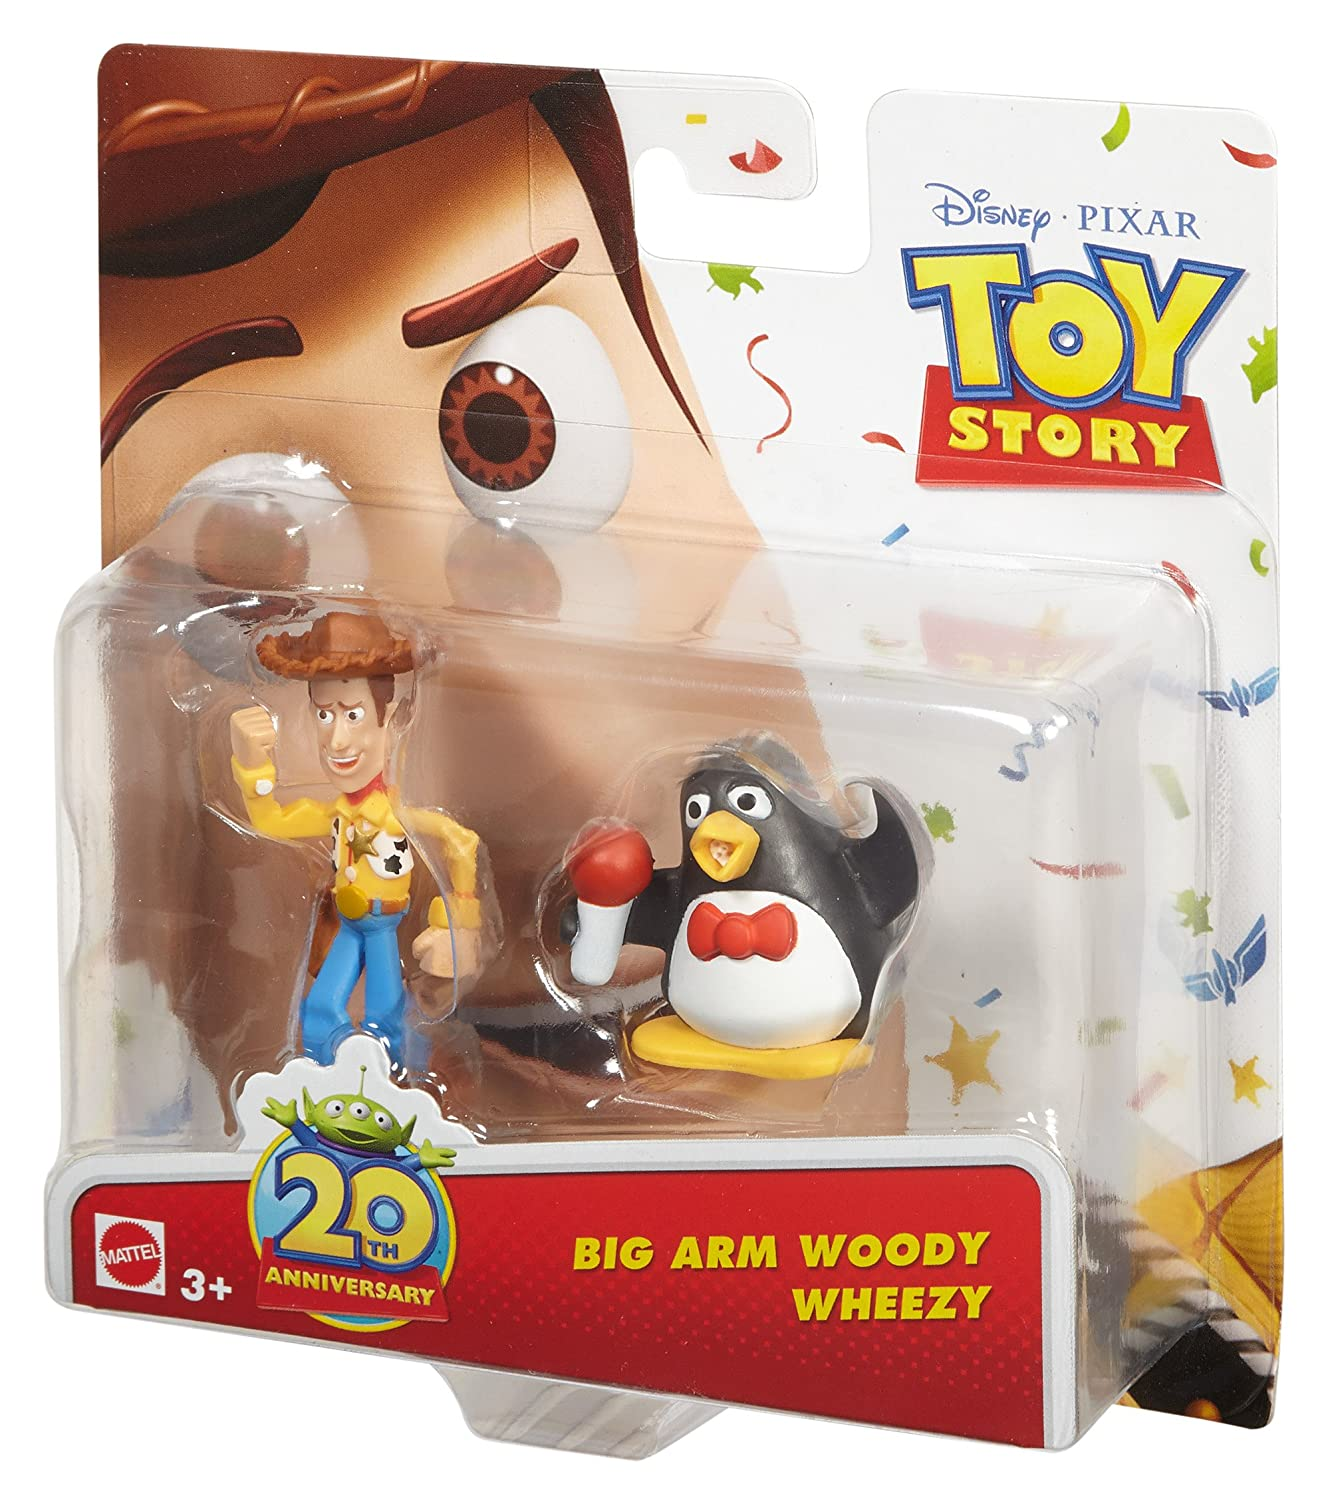 Mattel Disney Pixar Toy Story 20Th Anniversary Big Arm Woody and Wheezy  Figure Buddy 2-Pack c41507196a2